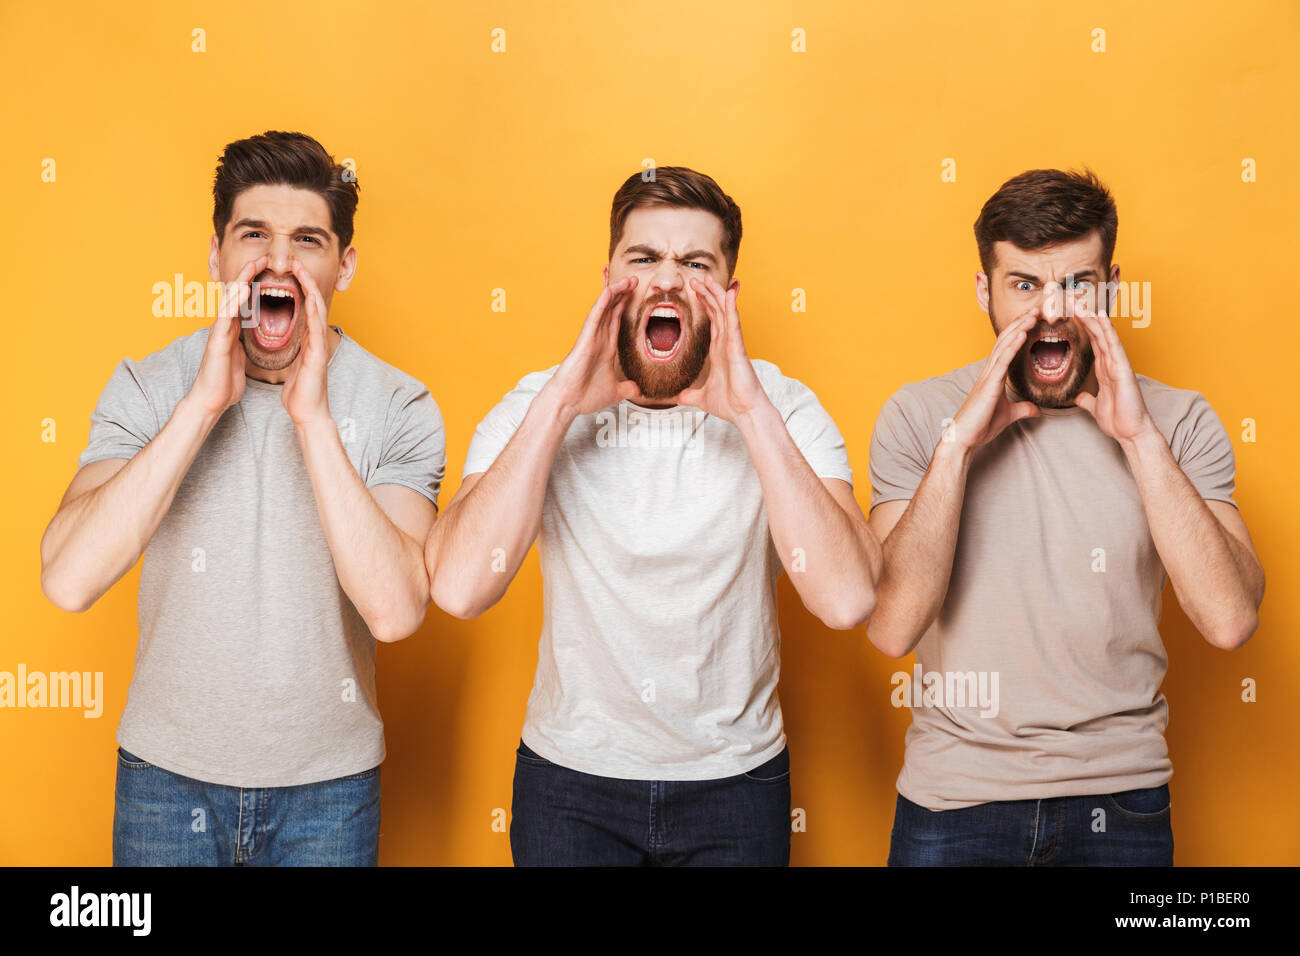 Three young angry men shouting isolated over yellow background - Stock Image